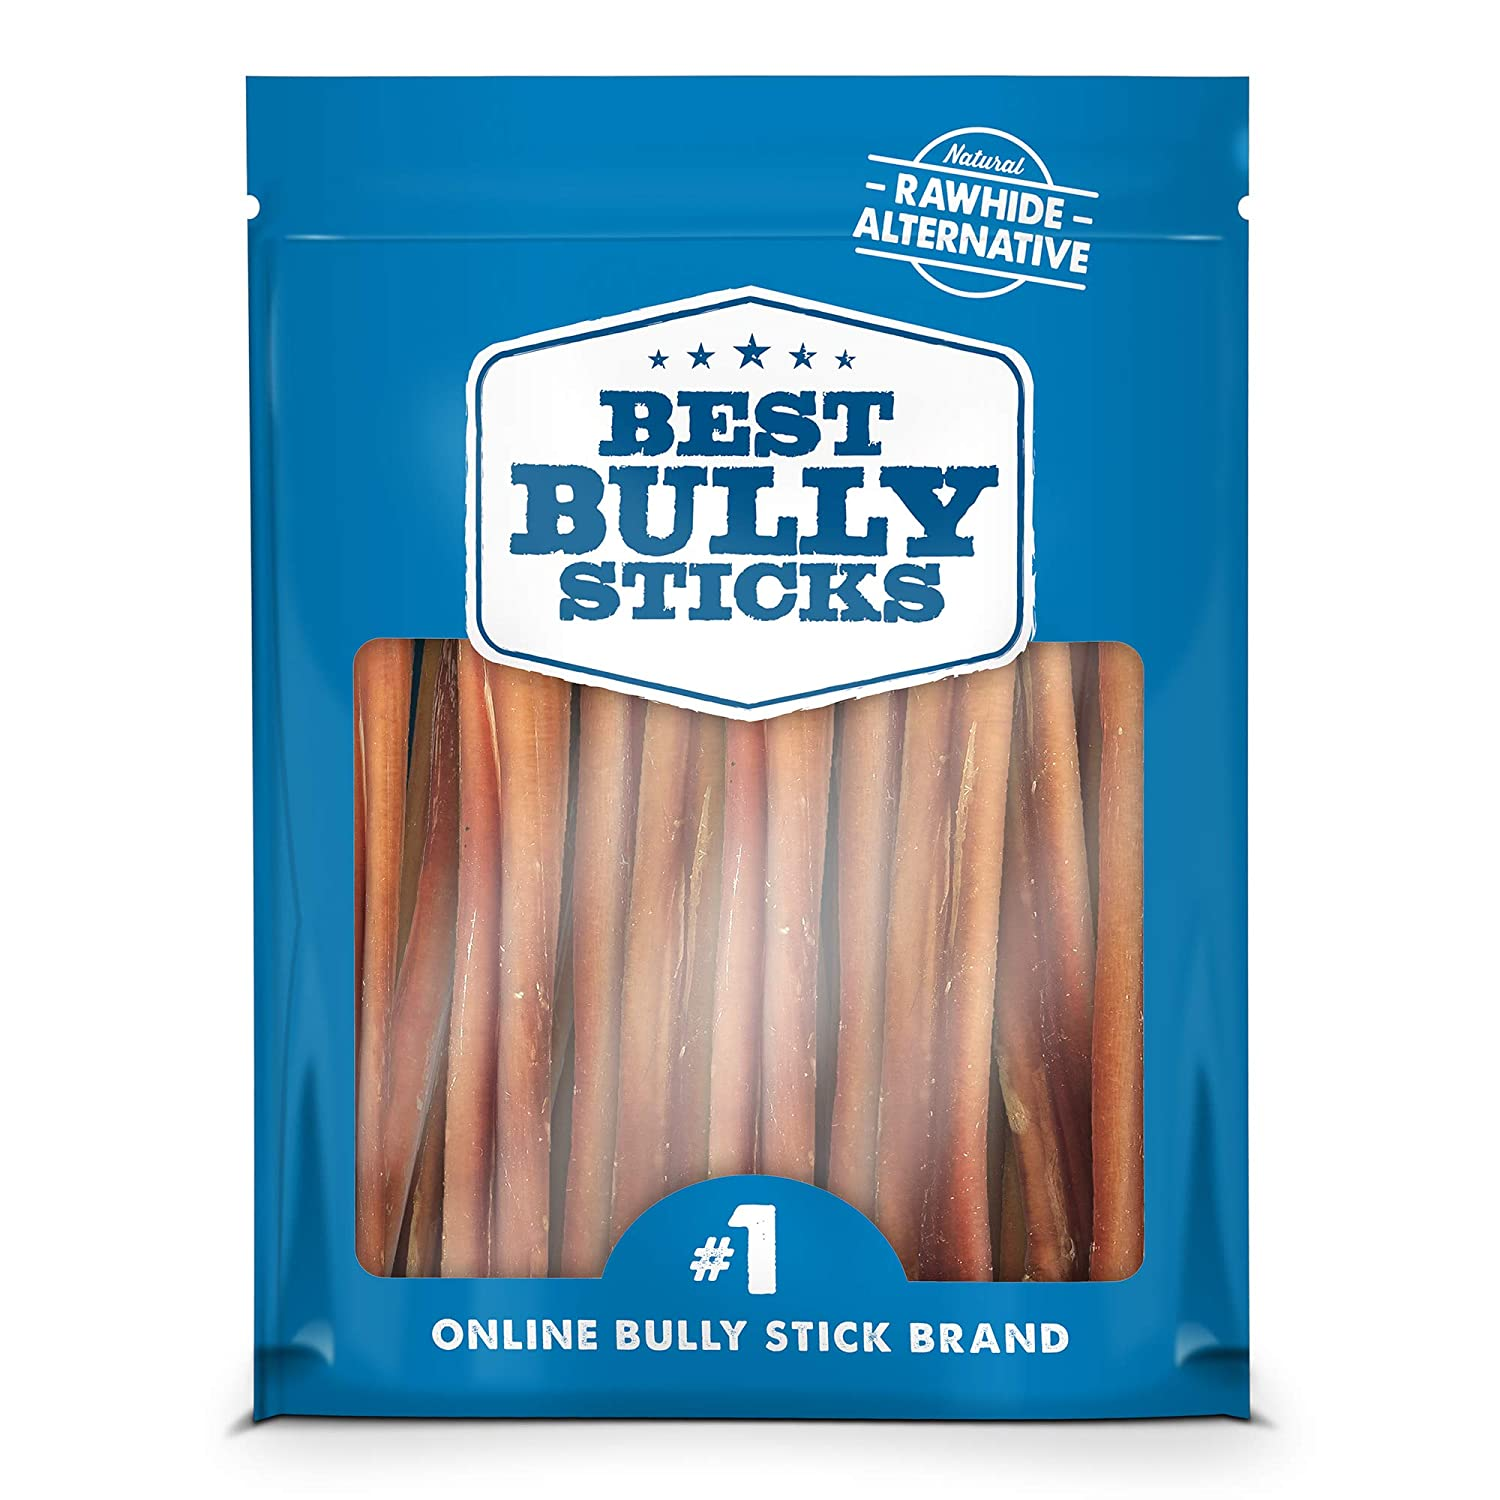 Best Bully Sticks Odor-Free Angus Bully Sticks – Made of All-Natural, Free-Range, Grass-Fed Angus Beef – Hand-Inspected and USDA FDA-Approved